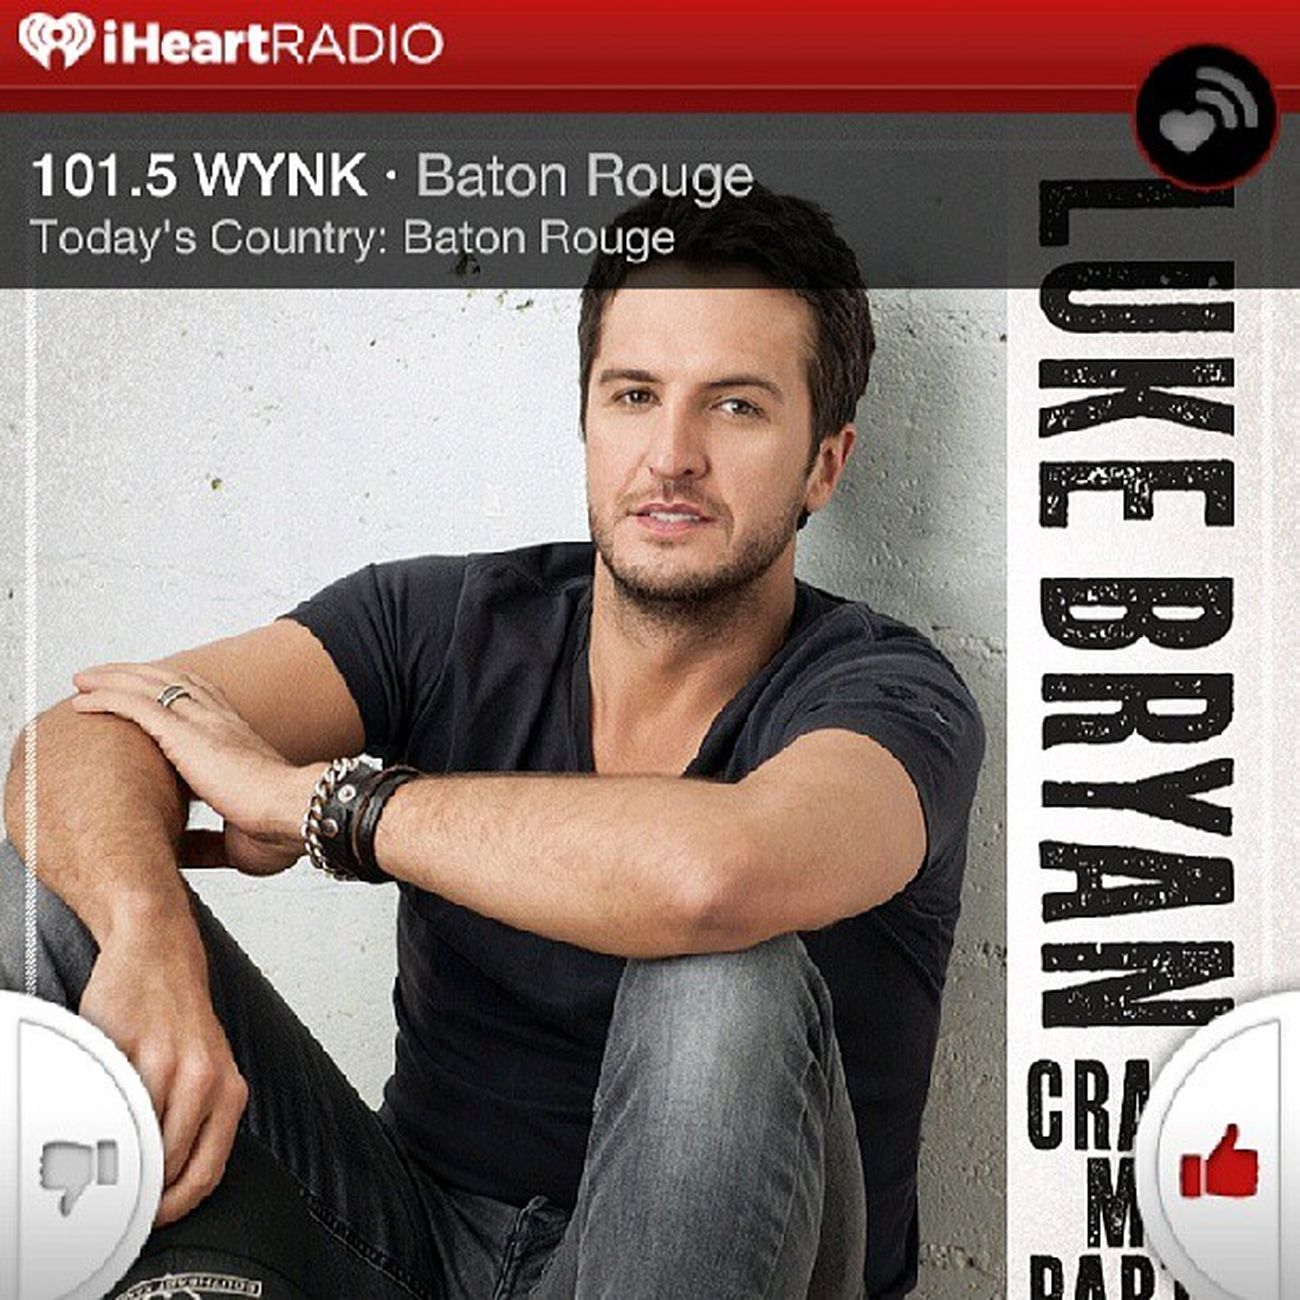 """This is a drop everything kinda thing. Swing on by, I'll pour you a drink. The door's unlocked, I'll leave on the lights. Baby you can crash my party anytime."" LukeBryan Crashmyparty Iheartradio BatonRouge"